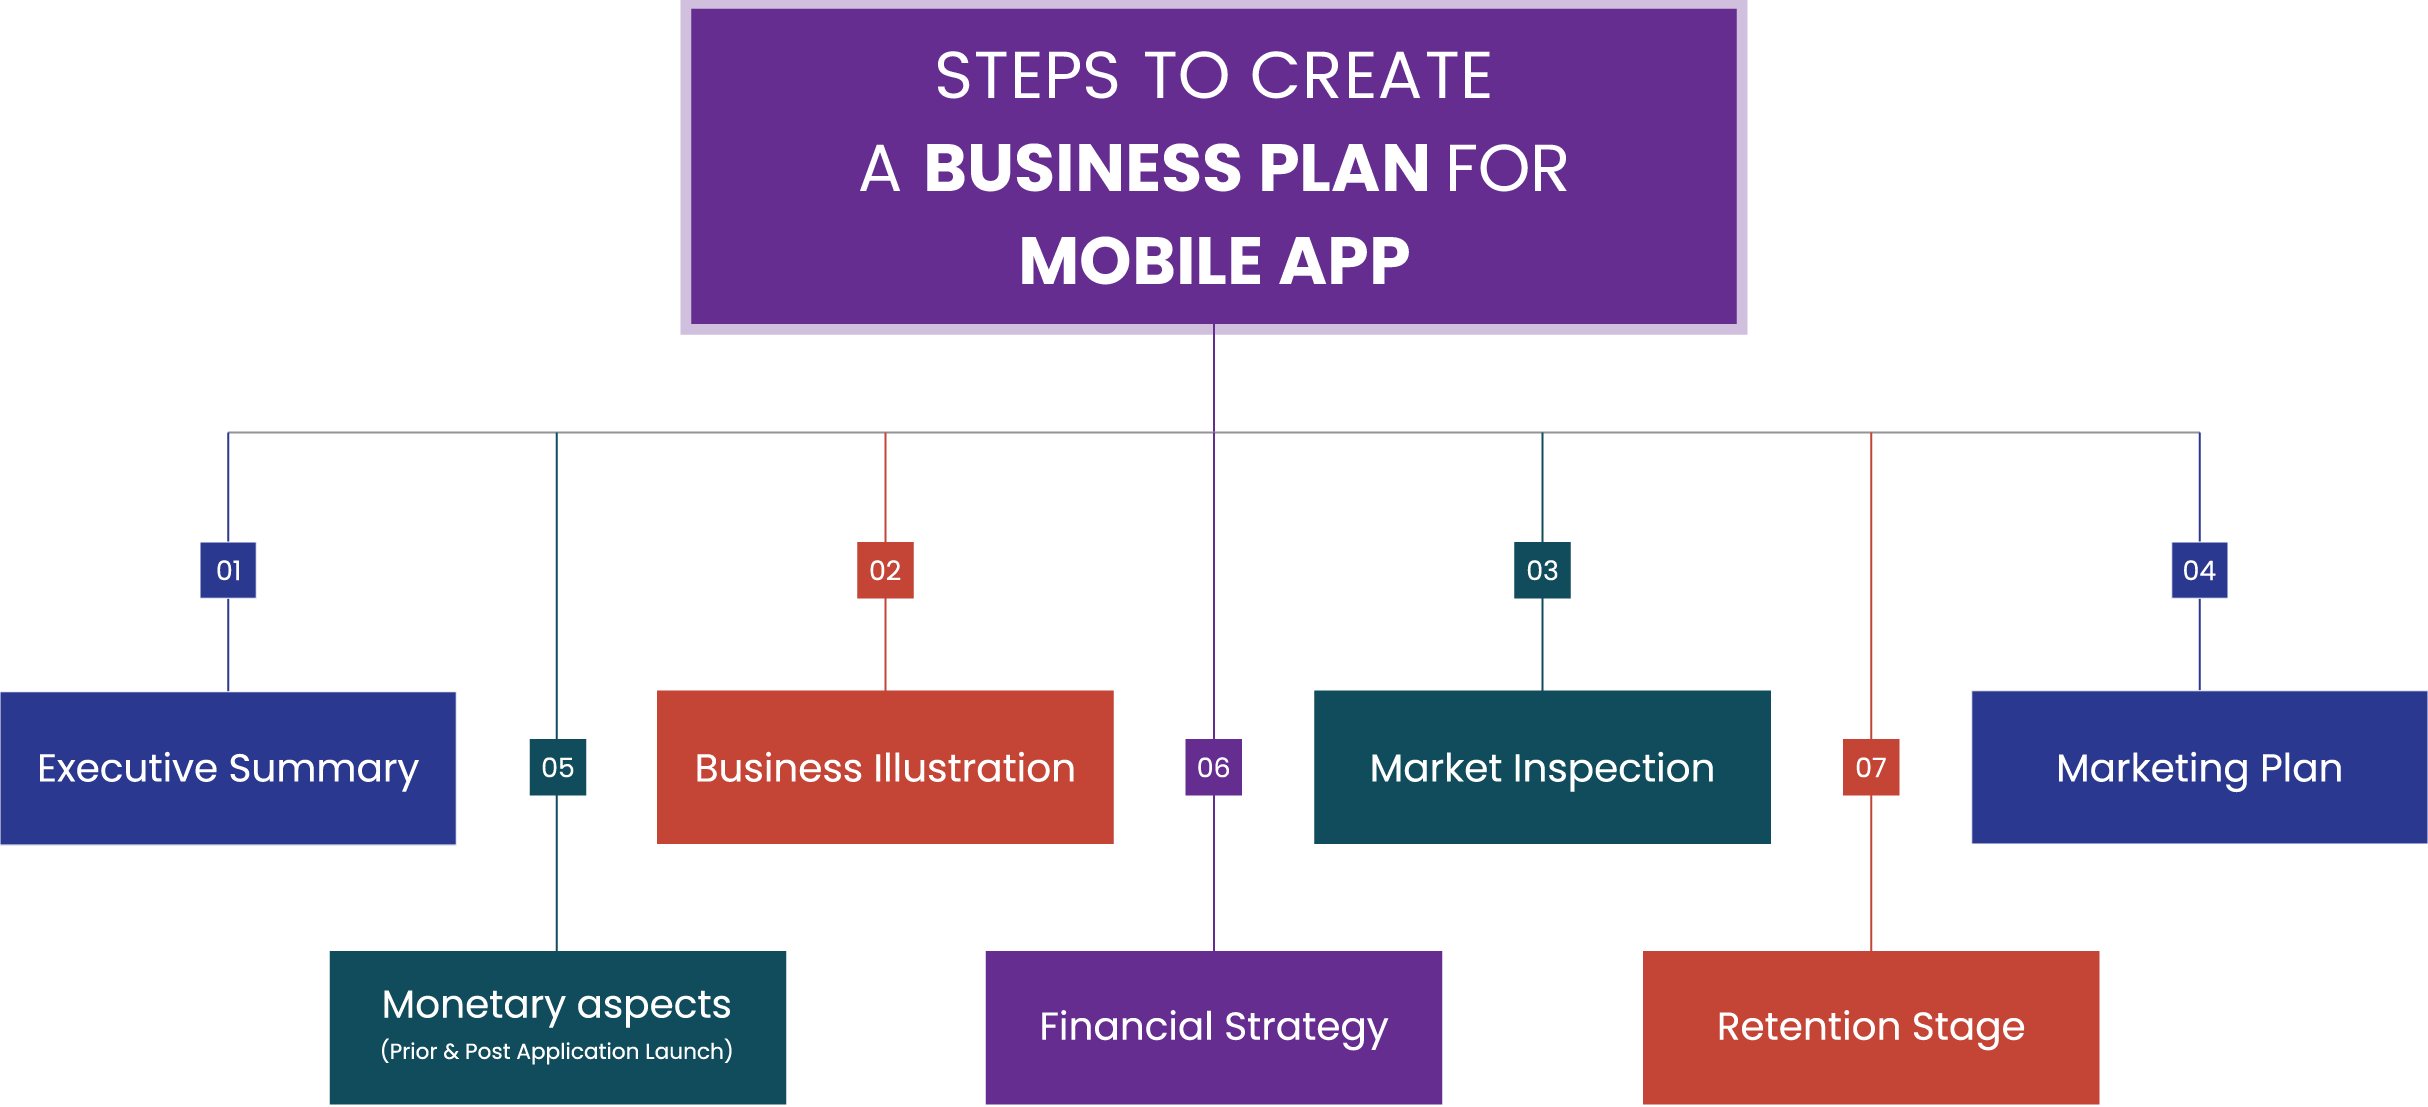 Steps to create a mobile app business plan